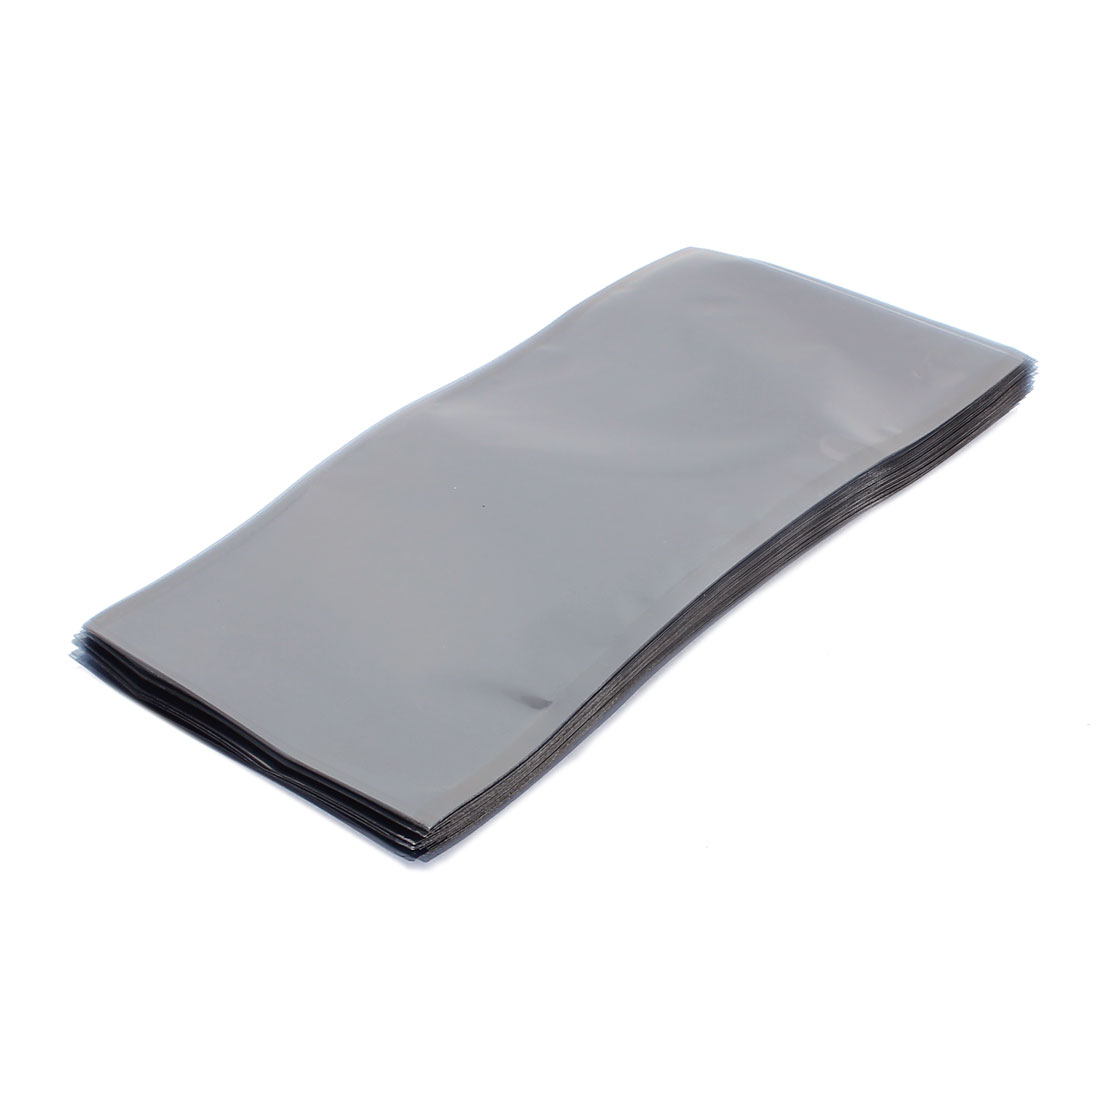 50 Pcs 110mm x 220mm Silver Tone Flat Open Top Anti Static Bag For Electronics